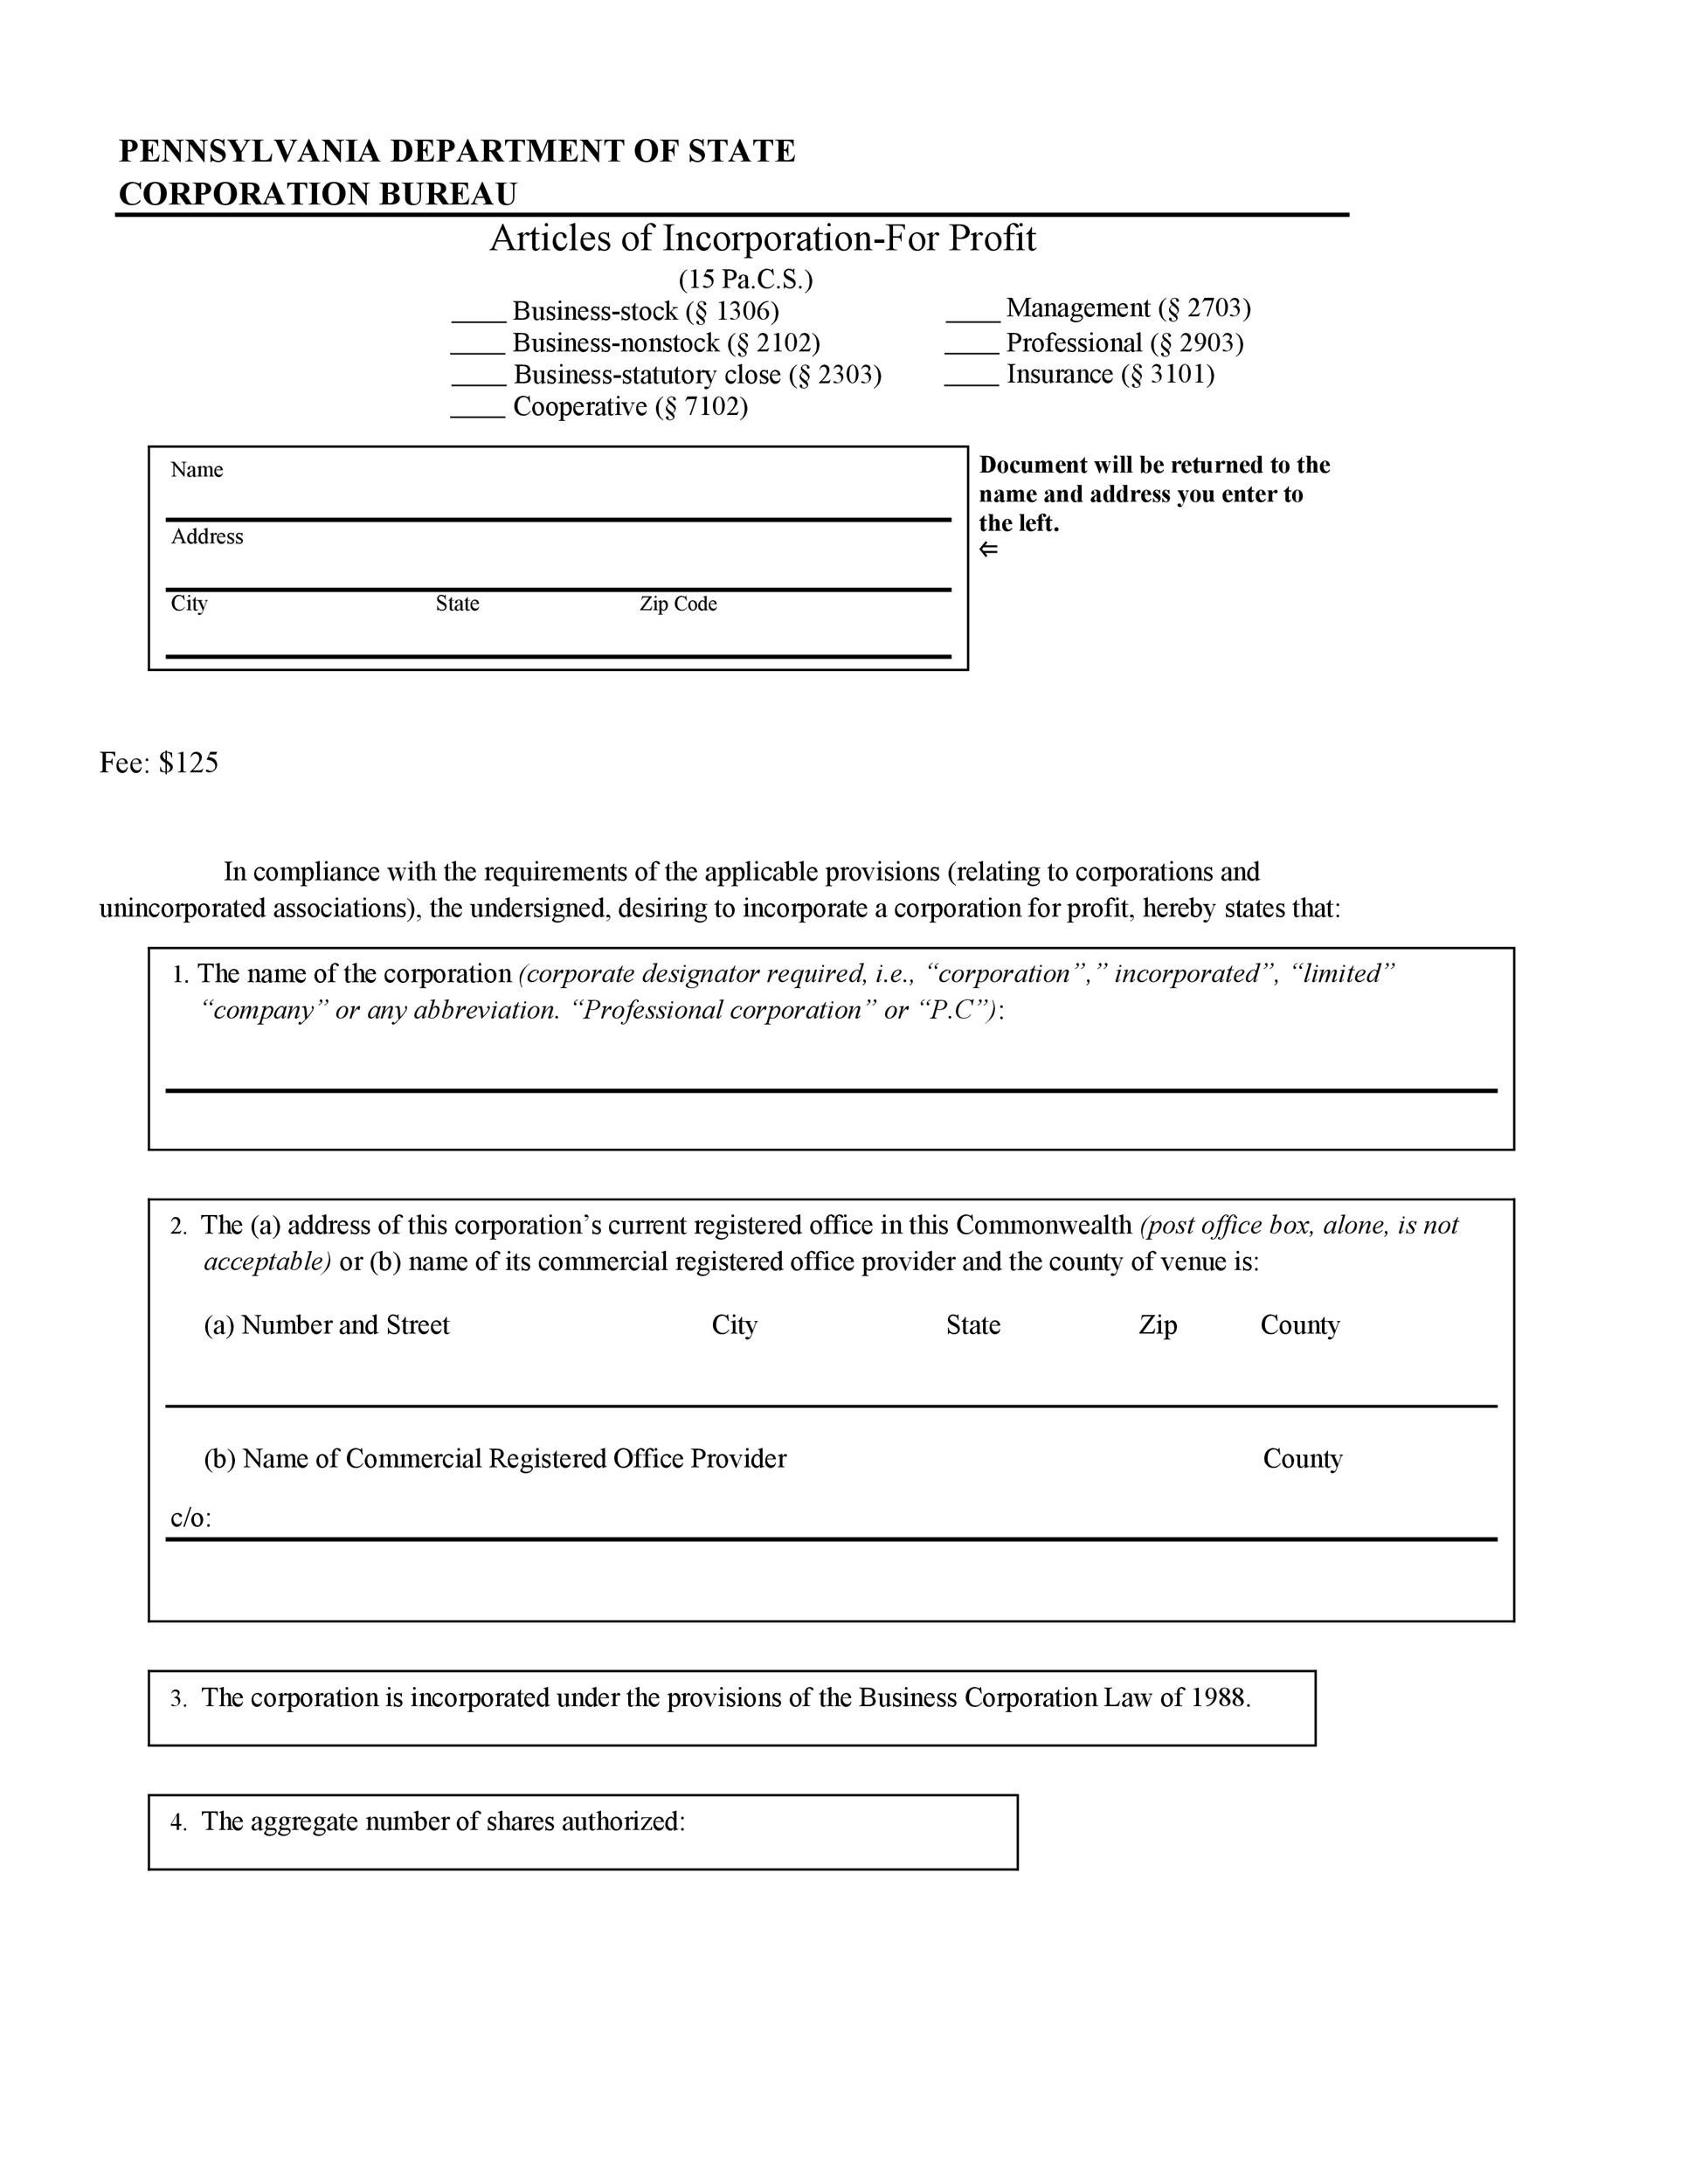 Free articles of incorporation template 27